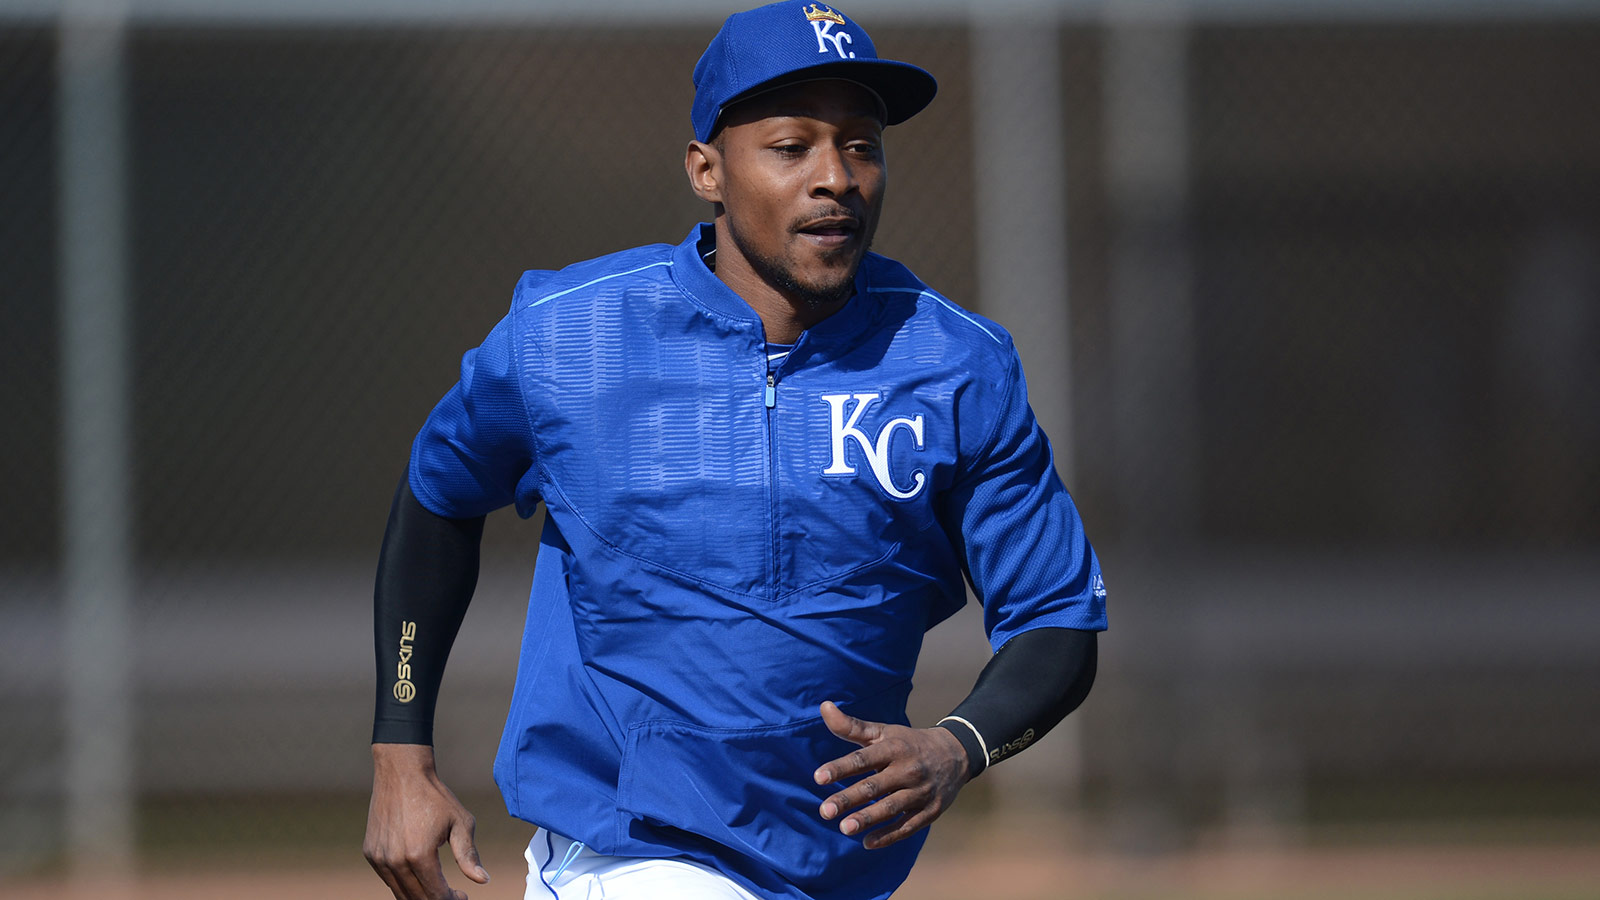 Oblique strain to sideline Royals' Dyson at start of season